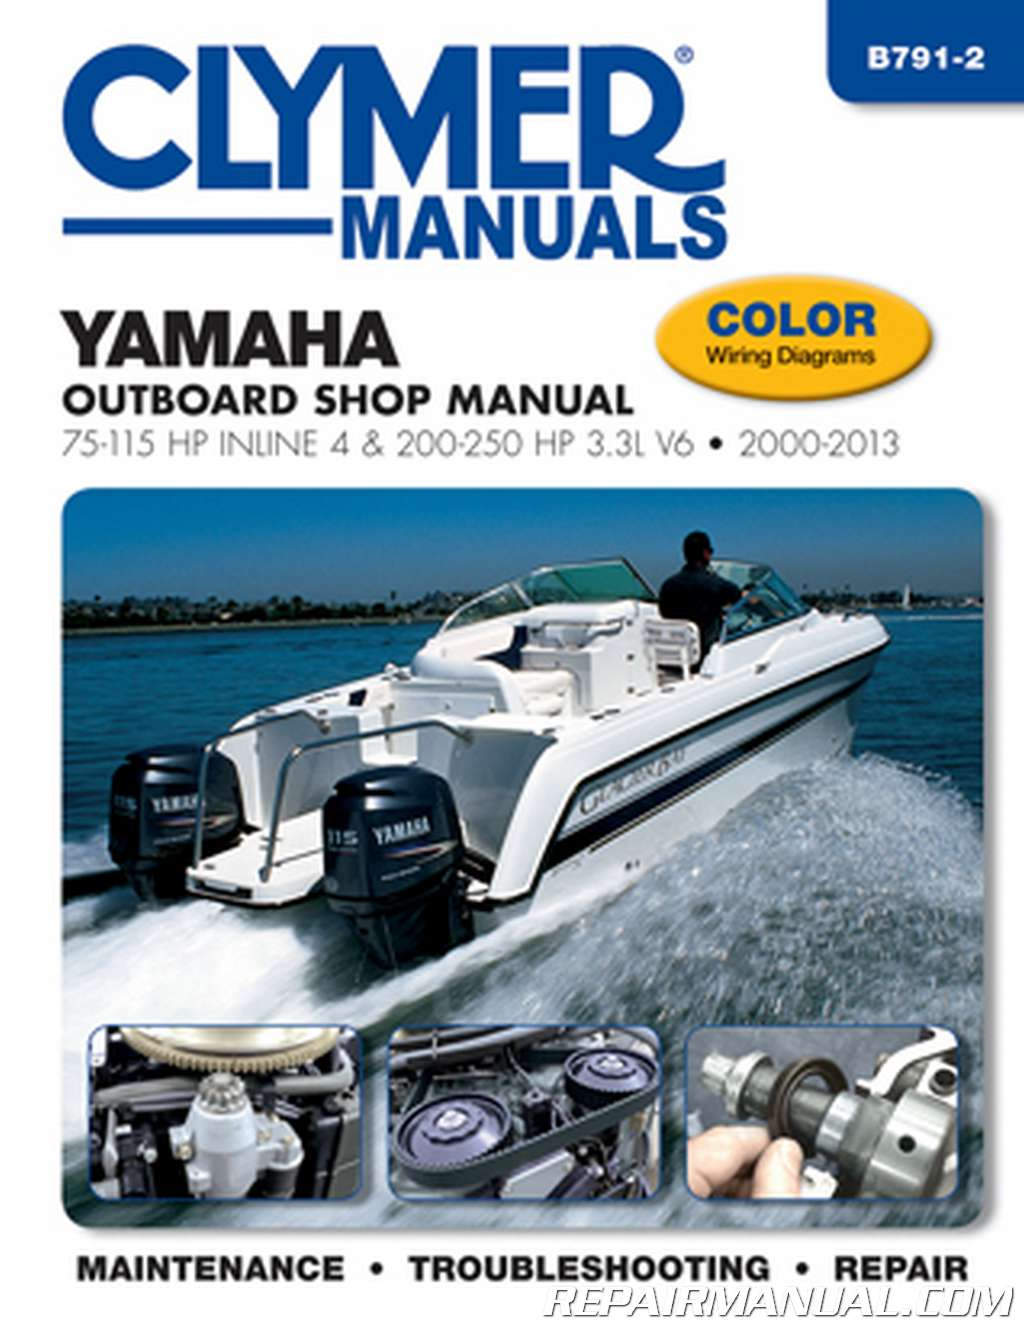 2000-2013 yamaha outboard shop manual